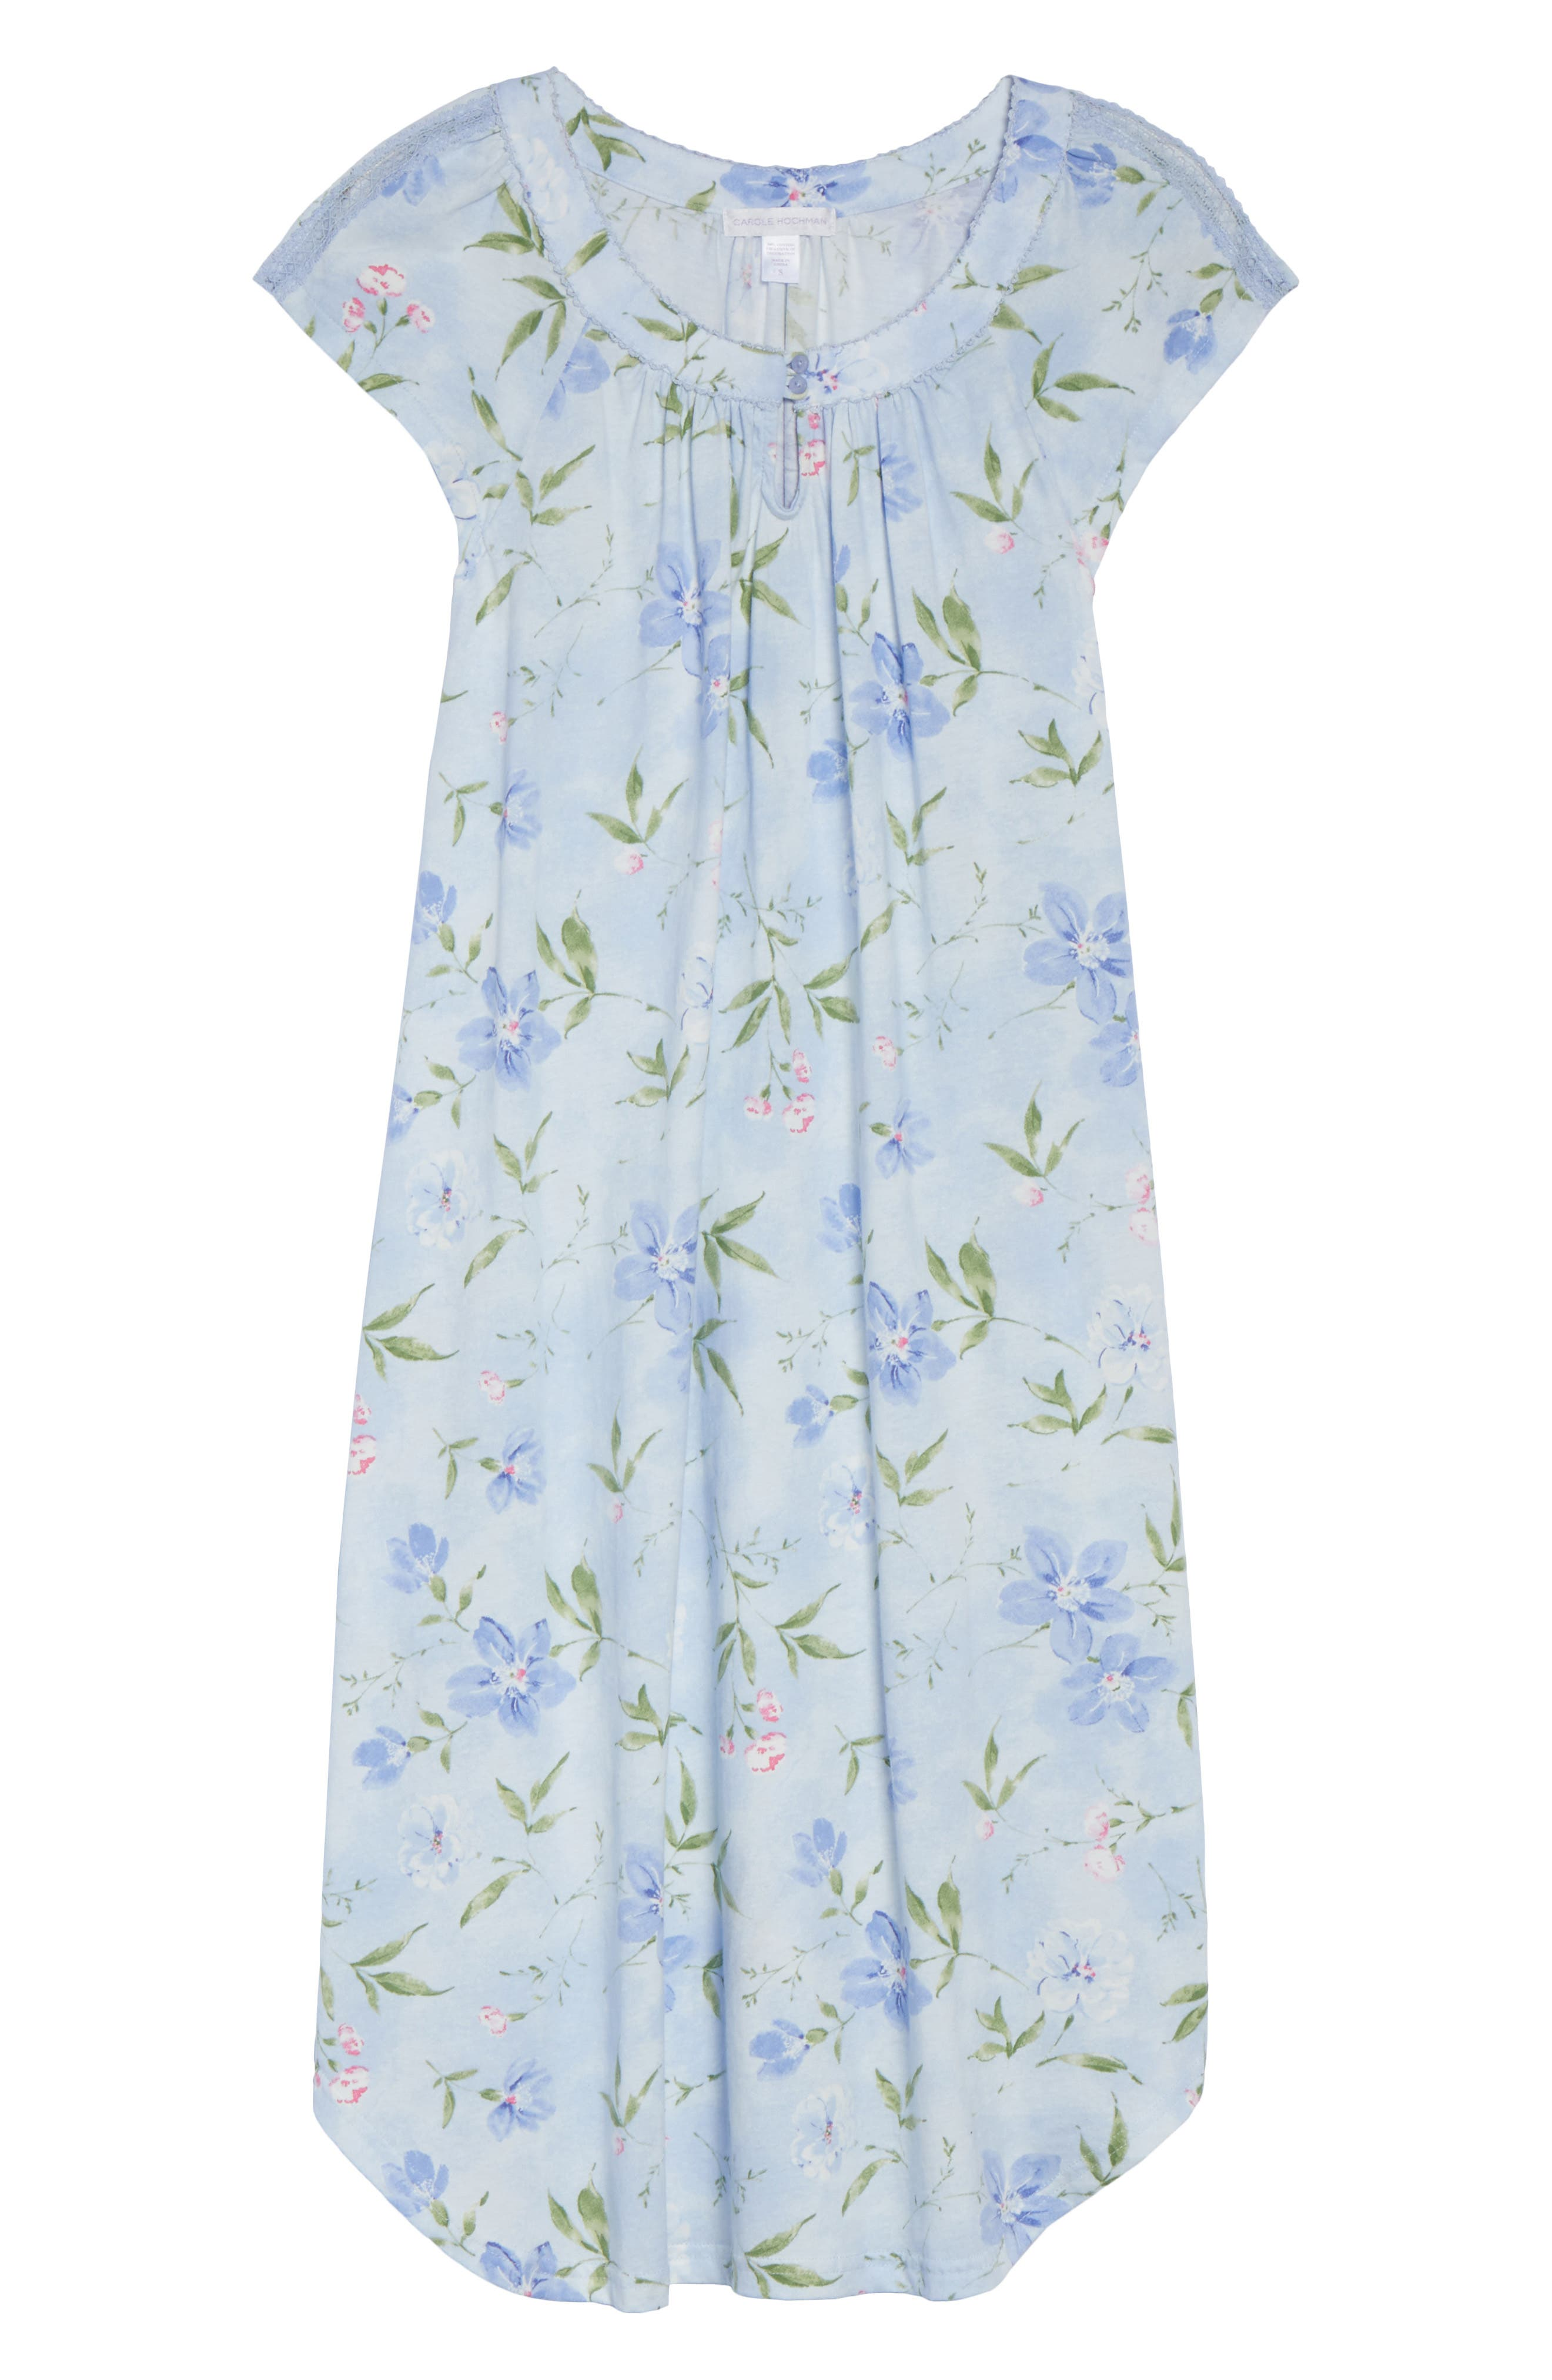 Short Nightgown,                             Alternate thumbnail 4, color,                             London Buds